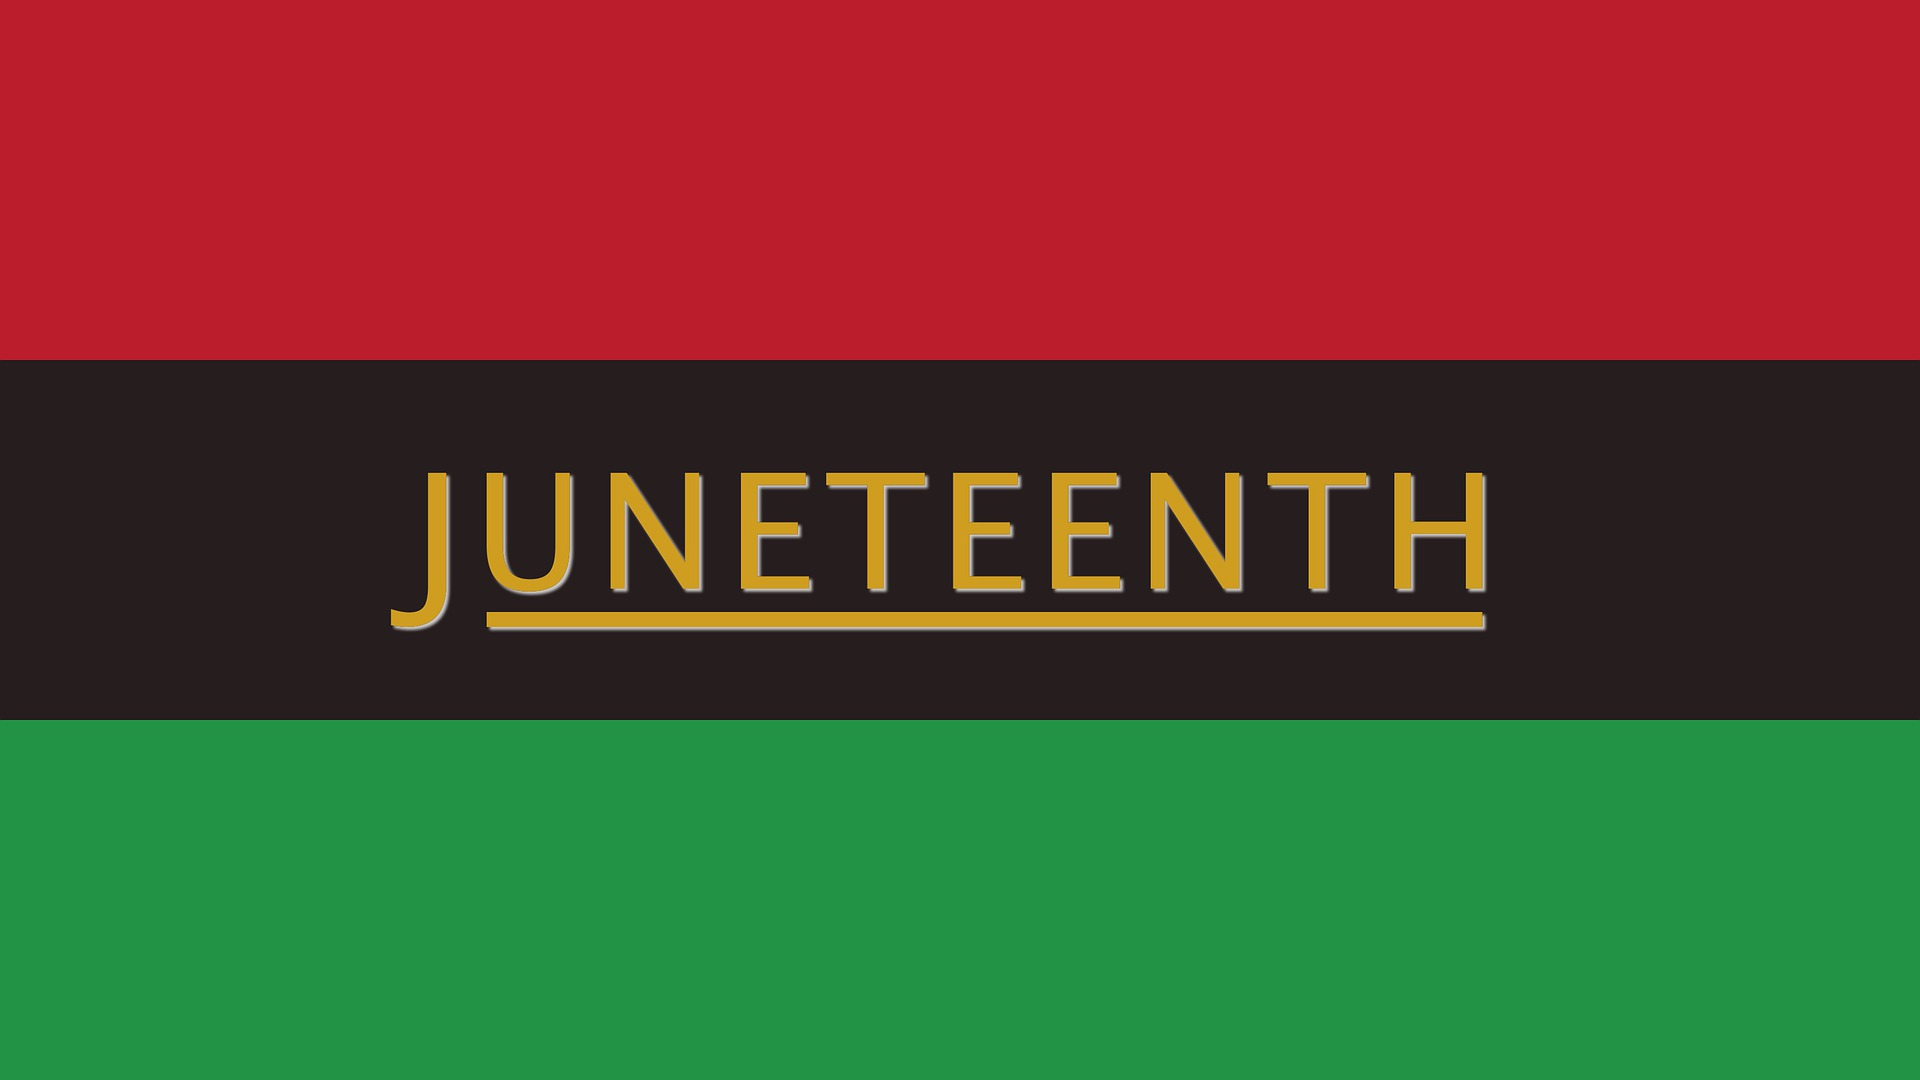 You are currently viewing Juneteenth is Recognized as Official Holiday by State Senate